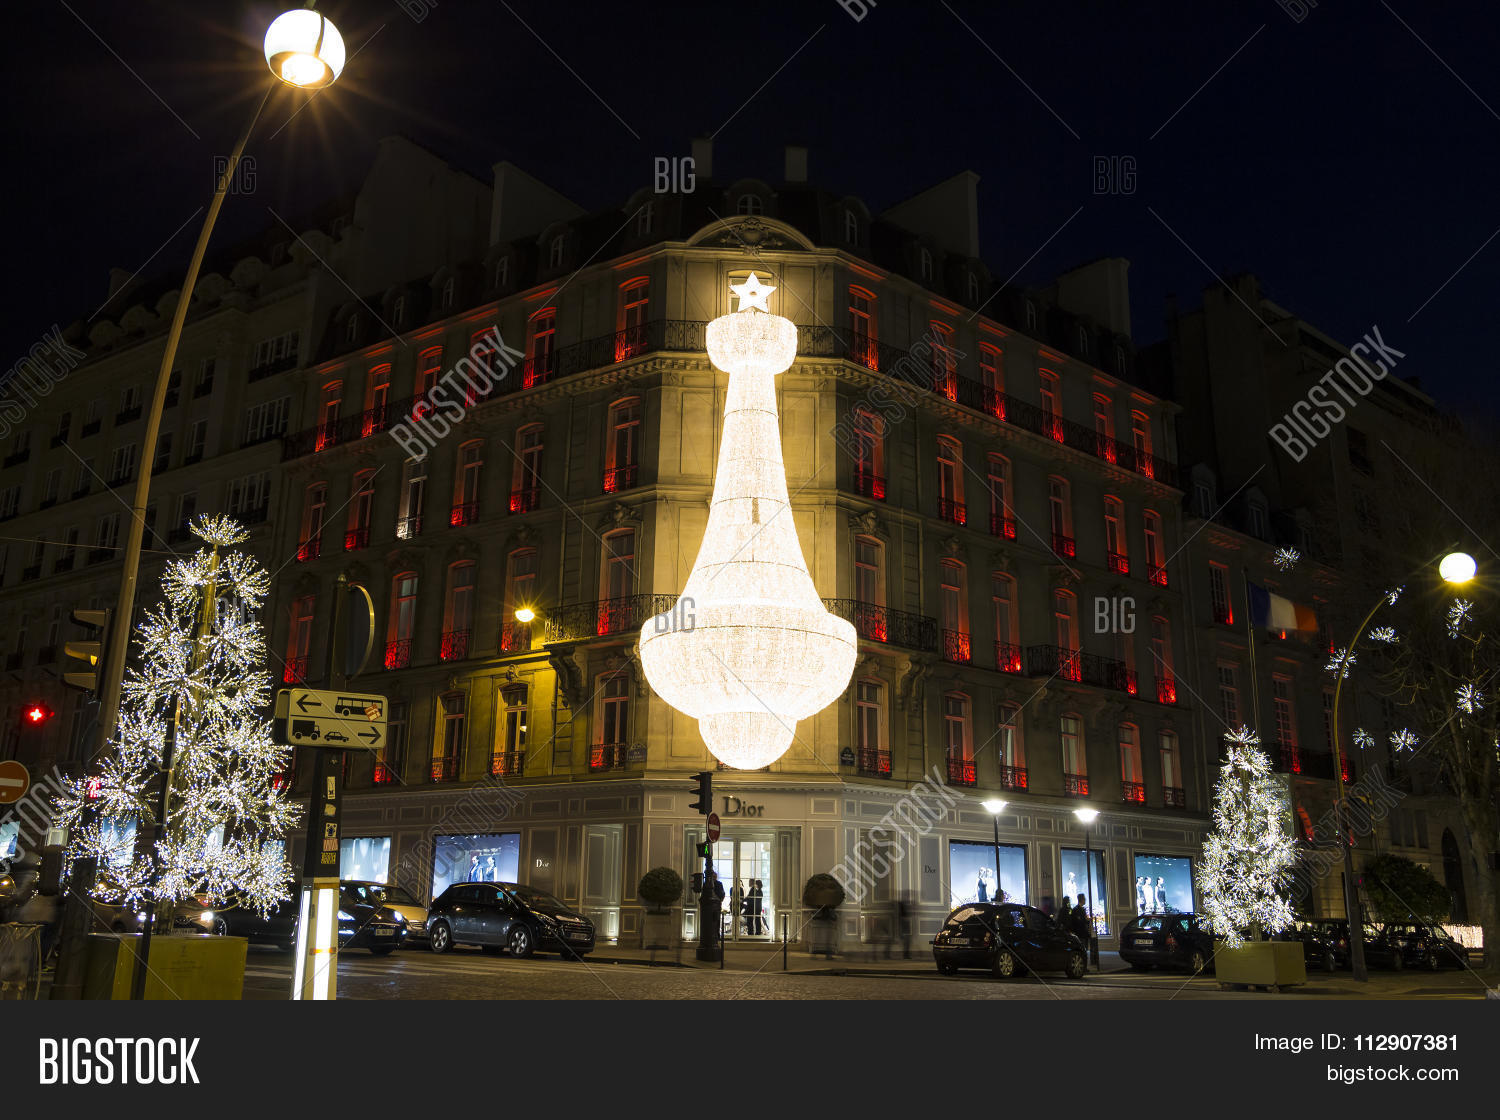 Christmas In France Decorations.Christmas Decorations Image Photo Free Trial Bigstock